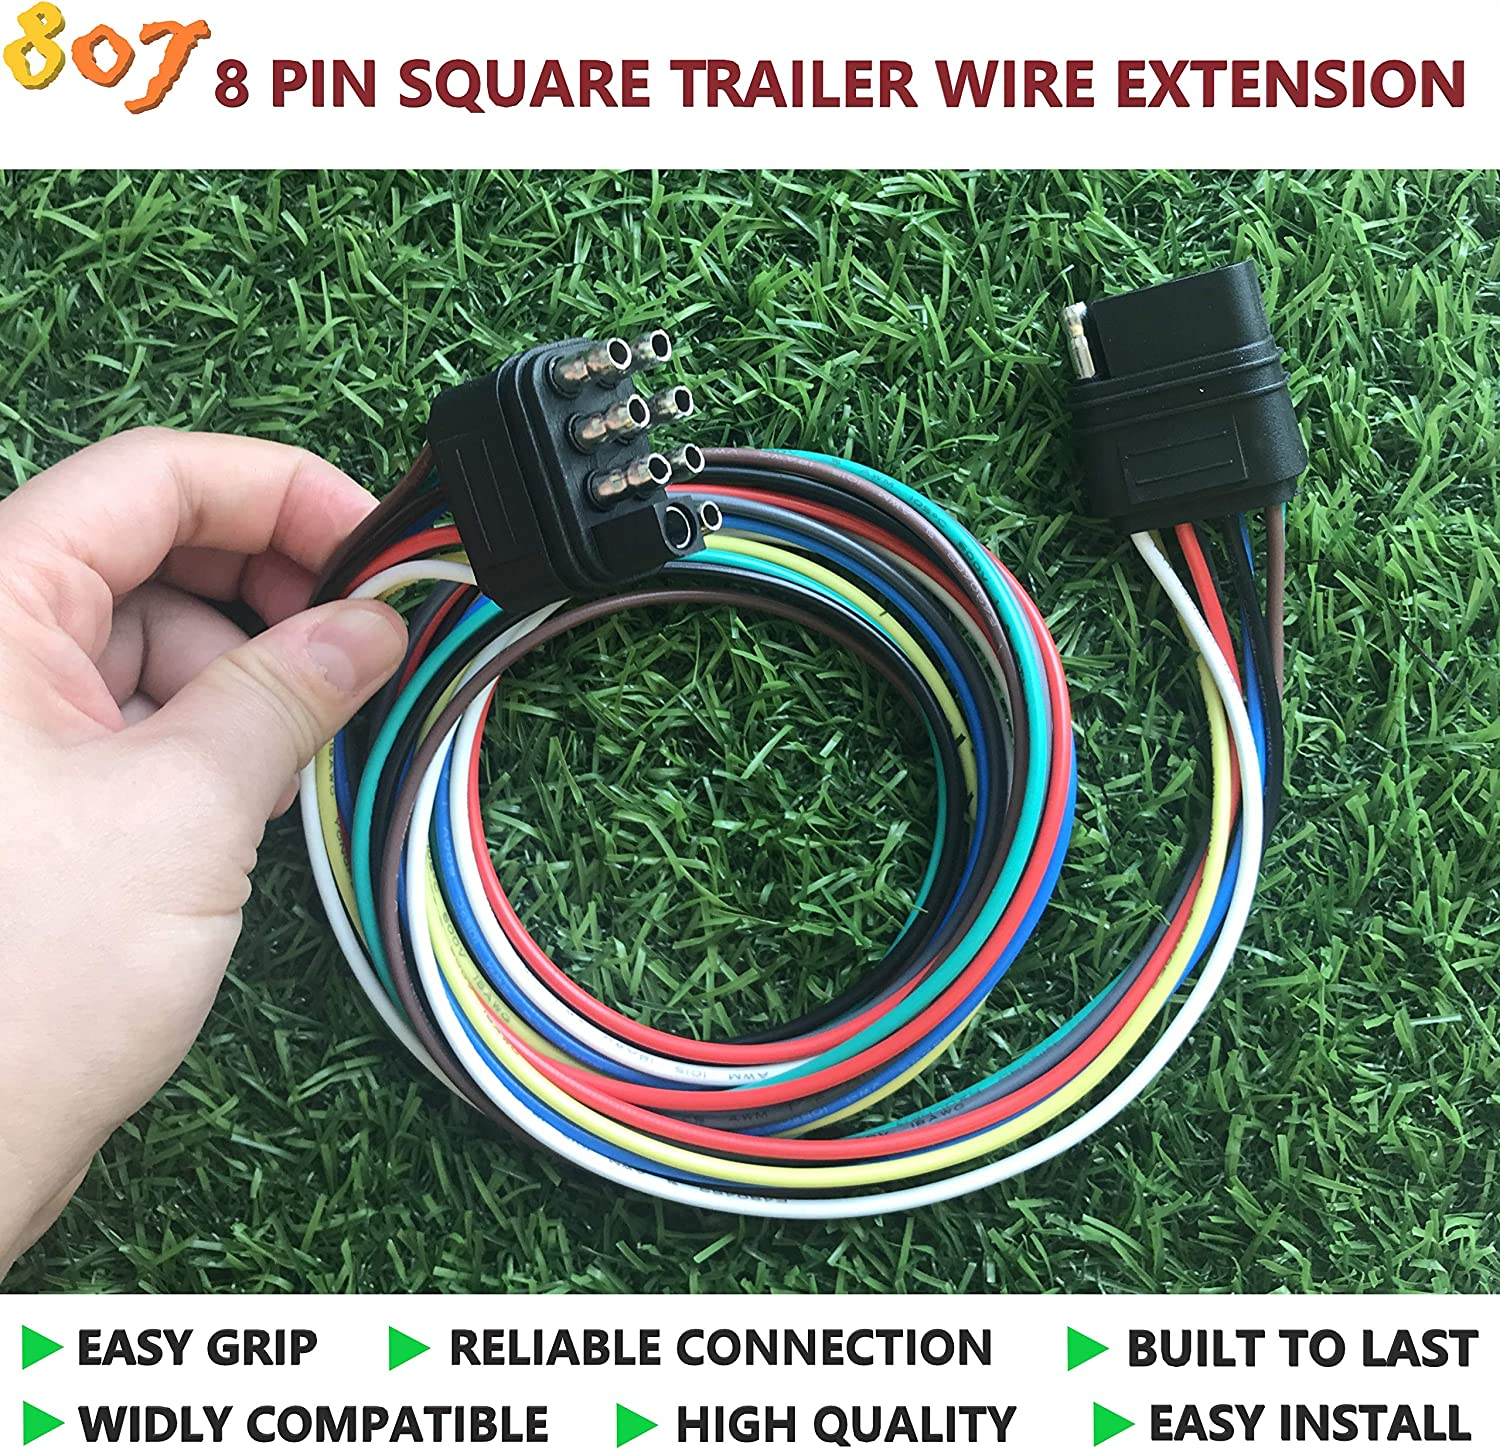 807 5-pin Trailer Wire Extension 36inch for LED Brake Tailgate Light Bars,Hitch Light Trailer Wiring Harness Extension Connector